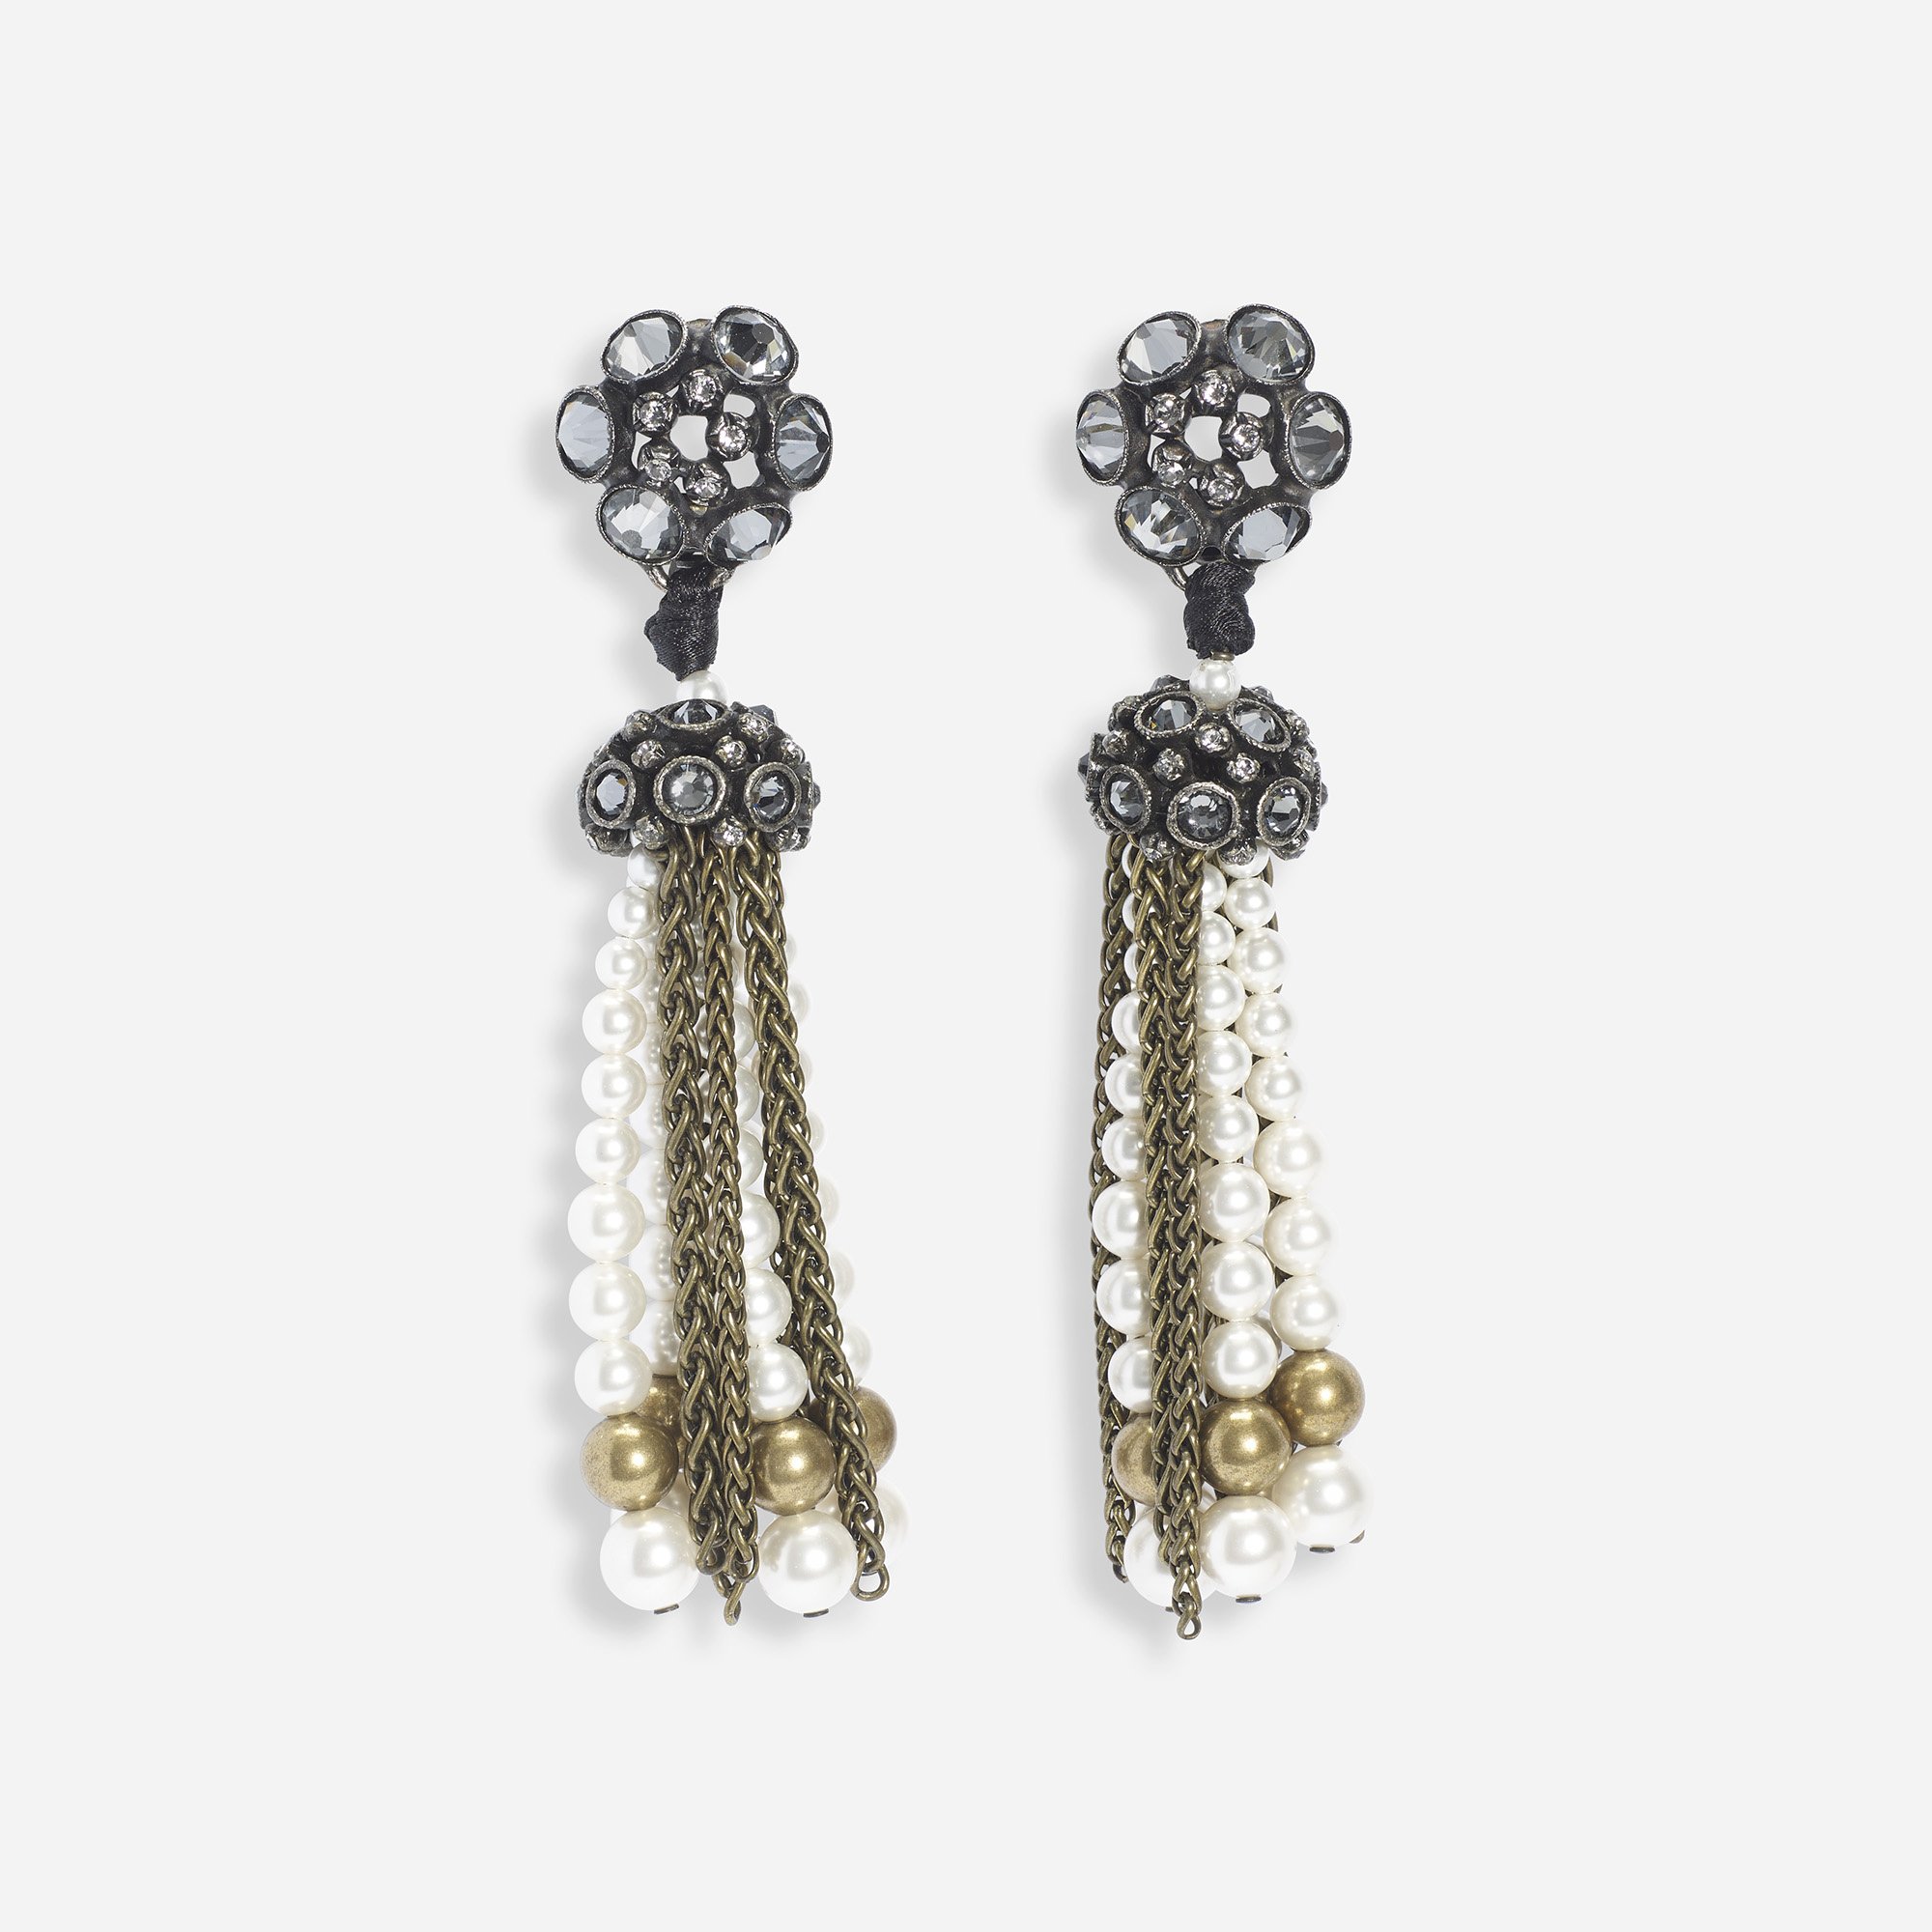 245 Alber Elbaz For Lanvin A Pair Of Earrings 1